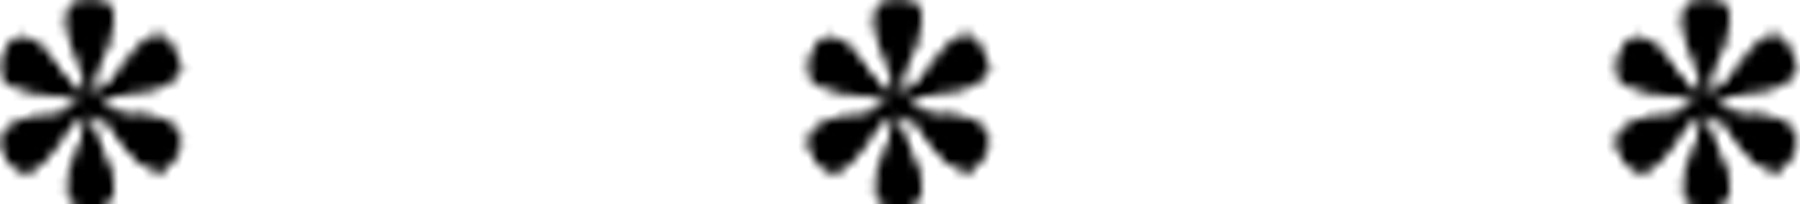 my character traits essay download